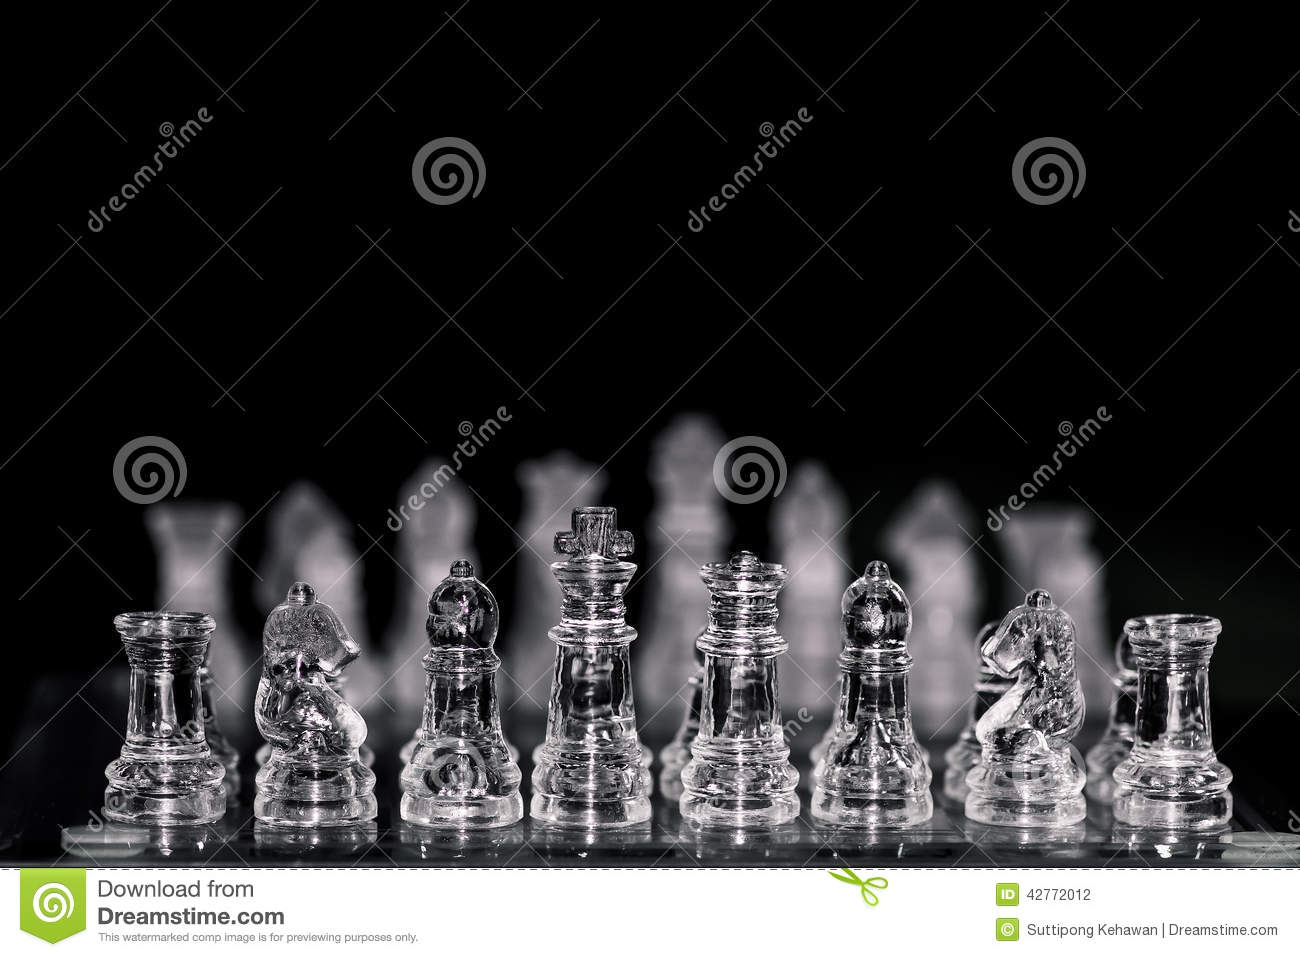 Chess game stock photo  Image of strategy, strategic - 42772012